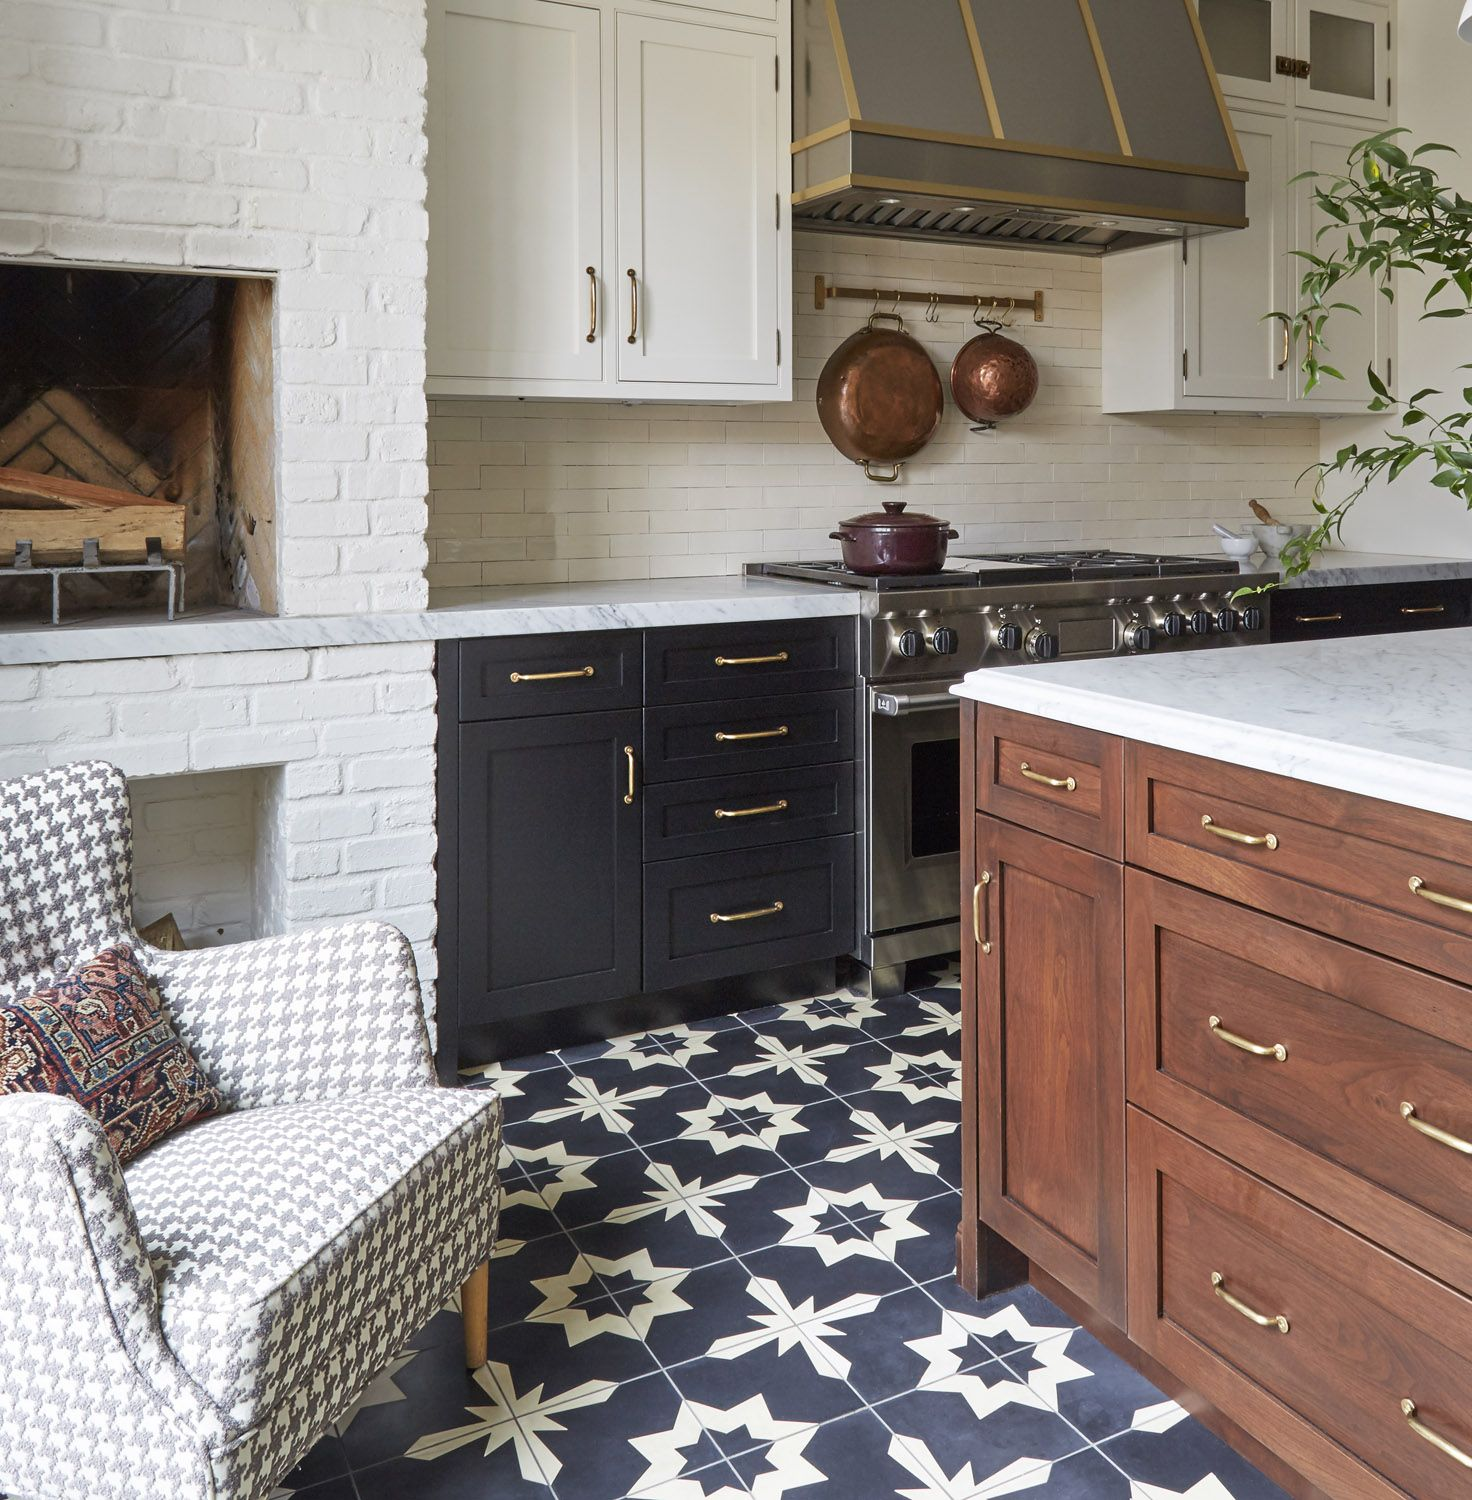 A Historical Inspired Kitchen With Industrial Vibes In Chicago Rue Kitchen Fireplace House Interior Cozy Kitchen Small kitchen with fireplace